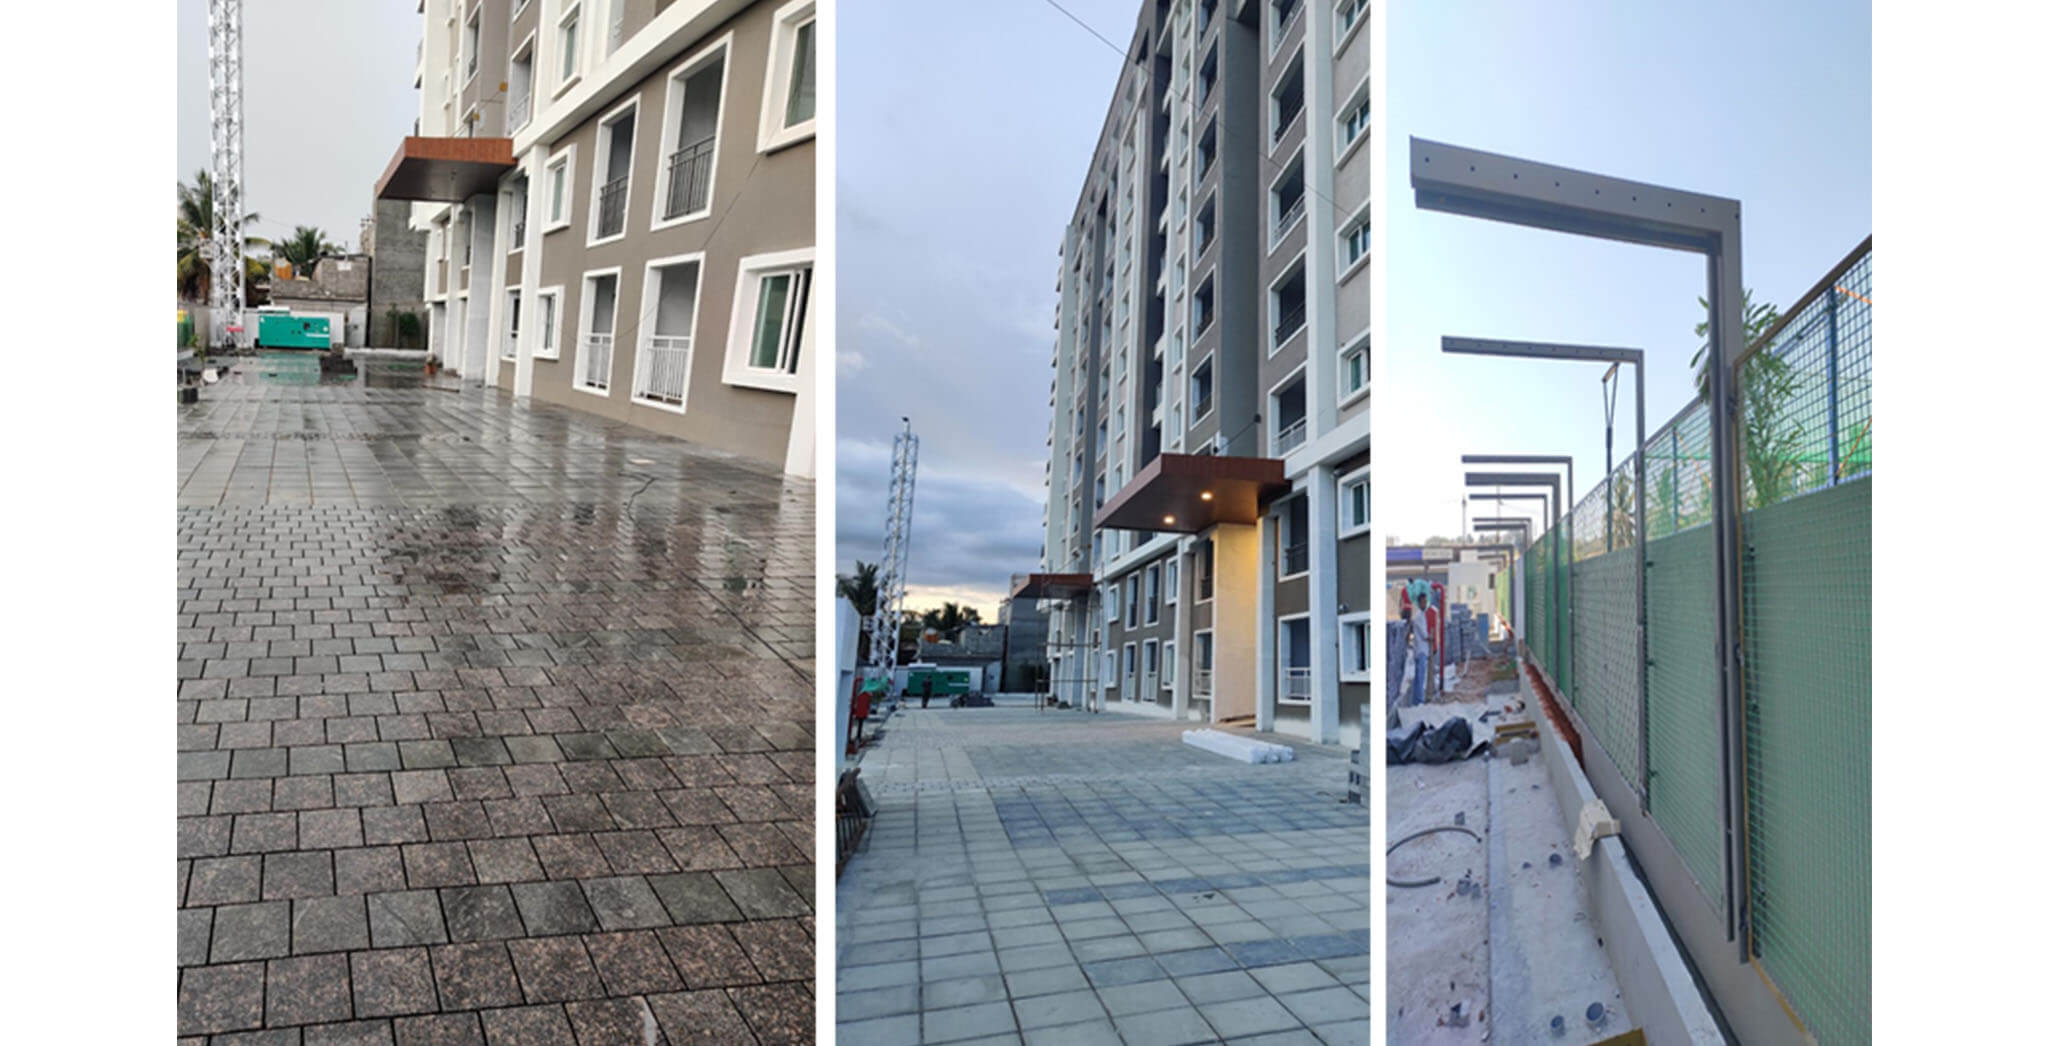 May 2021 - External development—pavers fixing along west side & embossing work